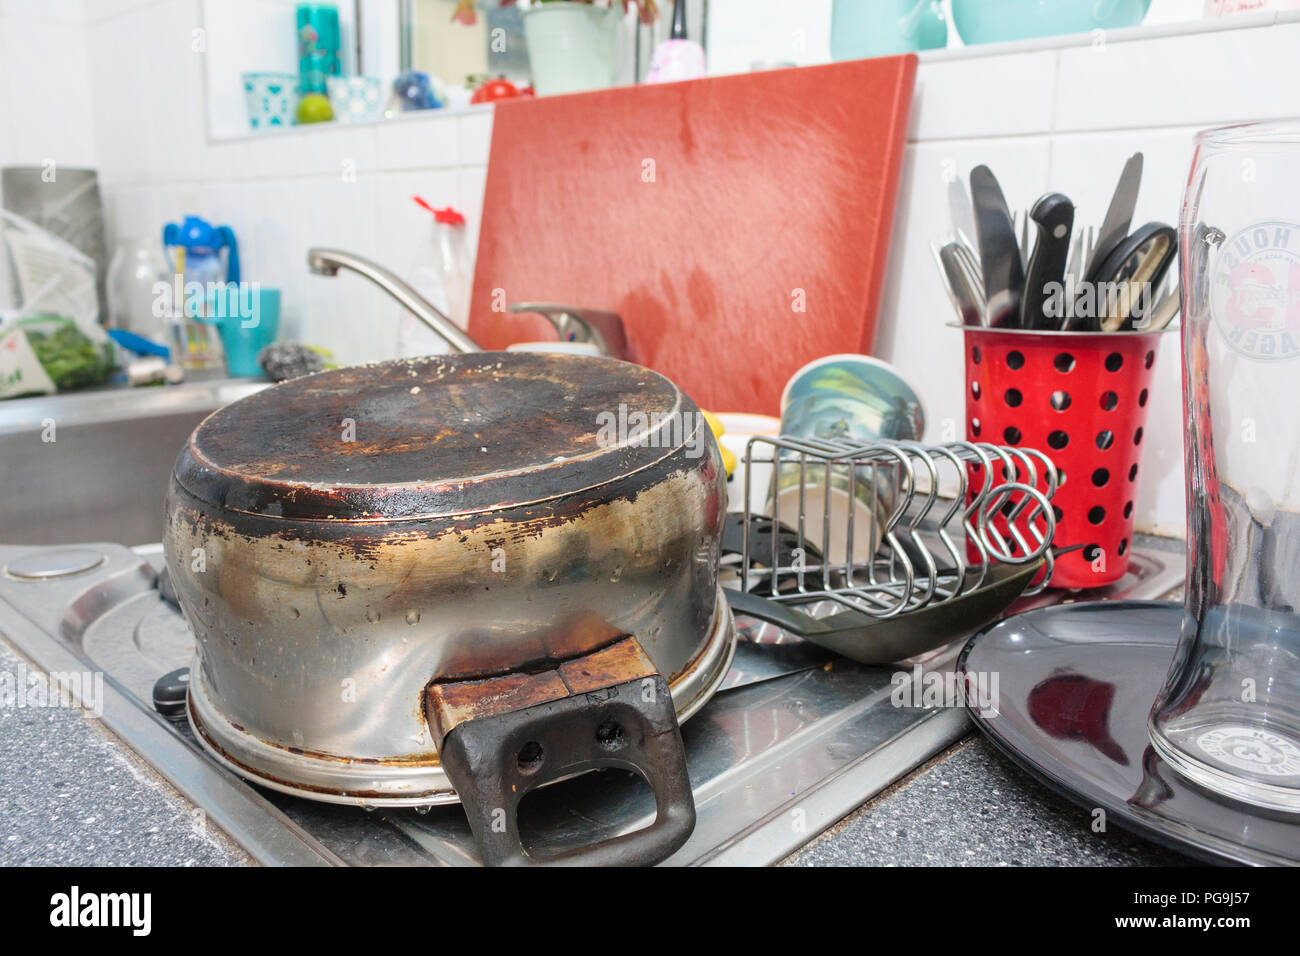 A pile of clean kitchen utensils on the draining board of a kitchen sink - Stock Image